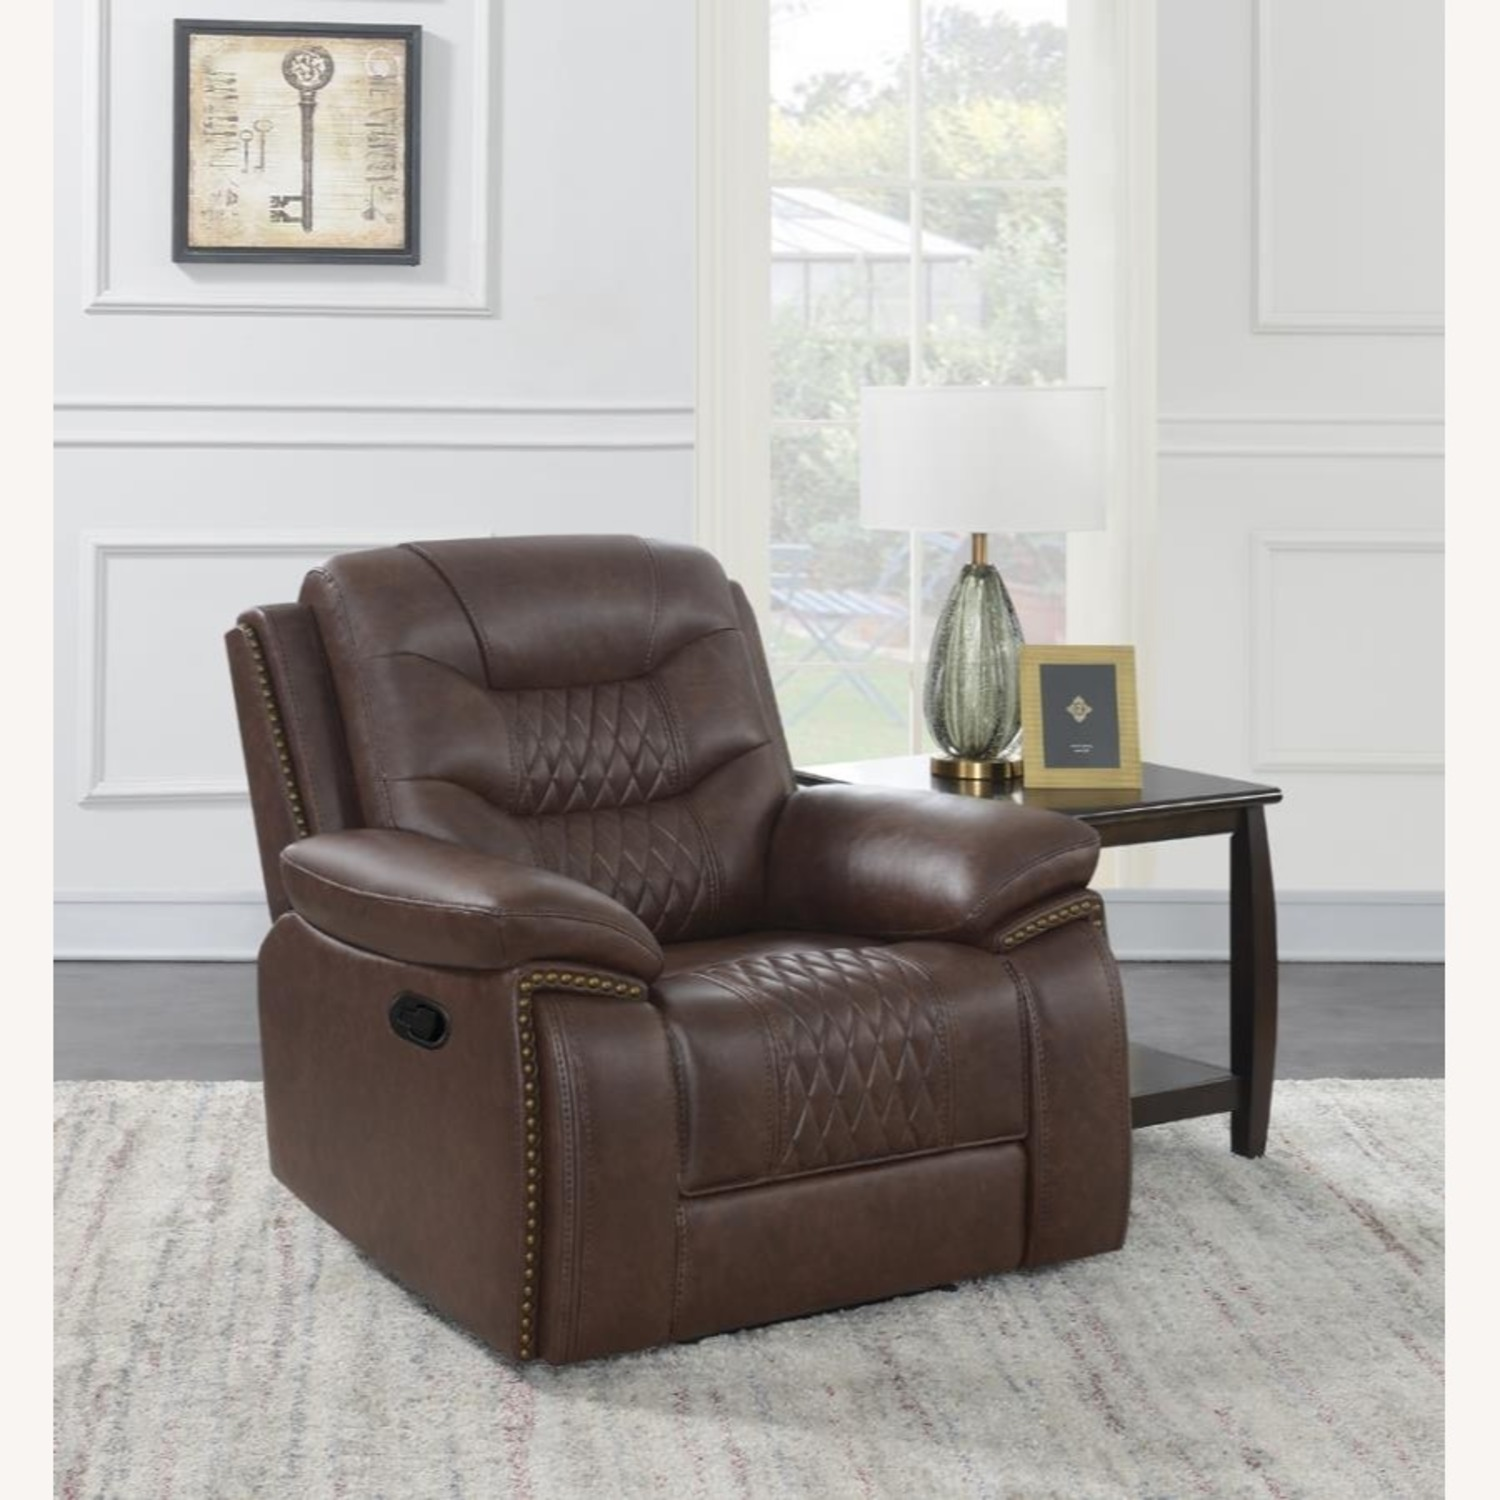 Recliner In Comfortable Brown Performance Leather - image-5